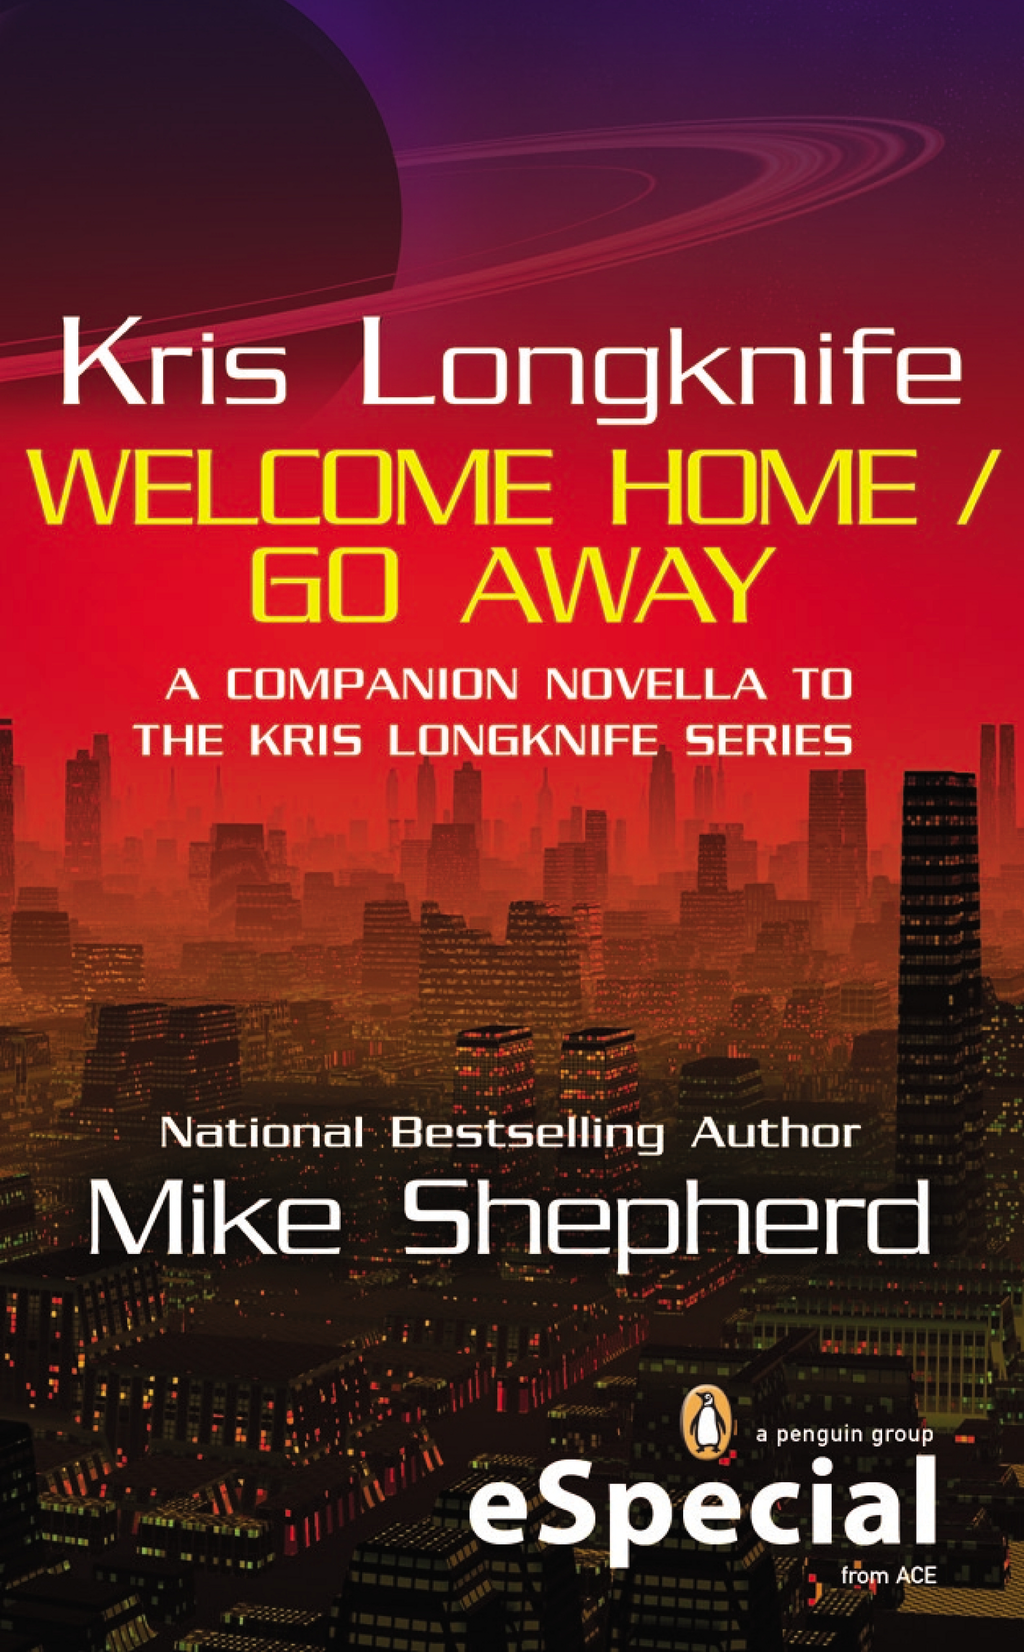 Kris Longknife: Welcome Home / Go Away By: Mike Shepherd